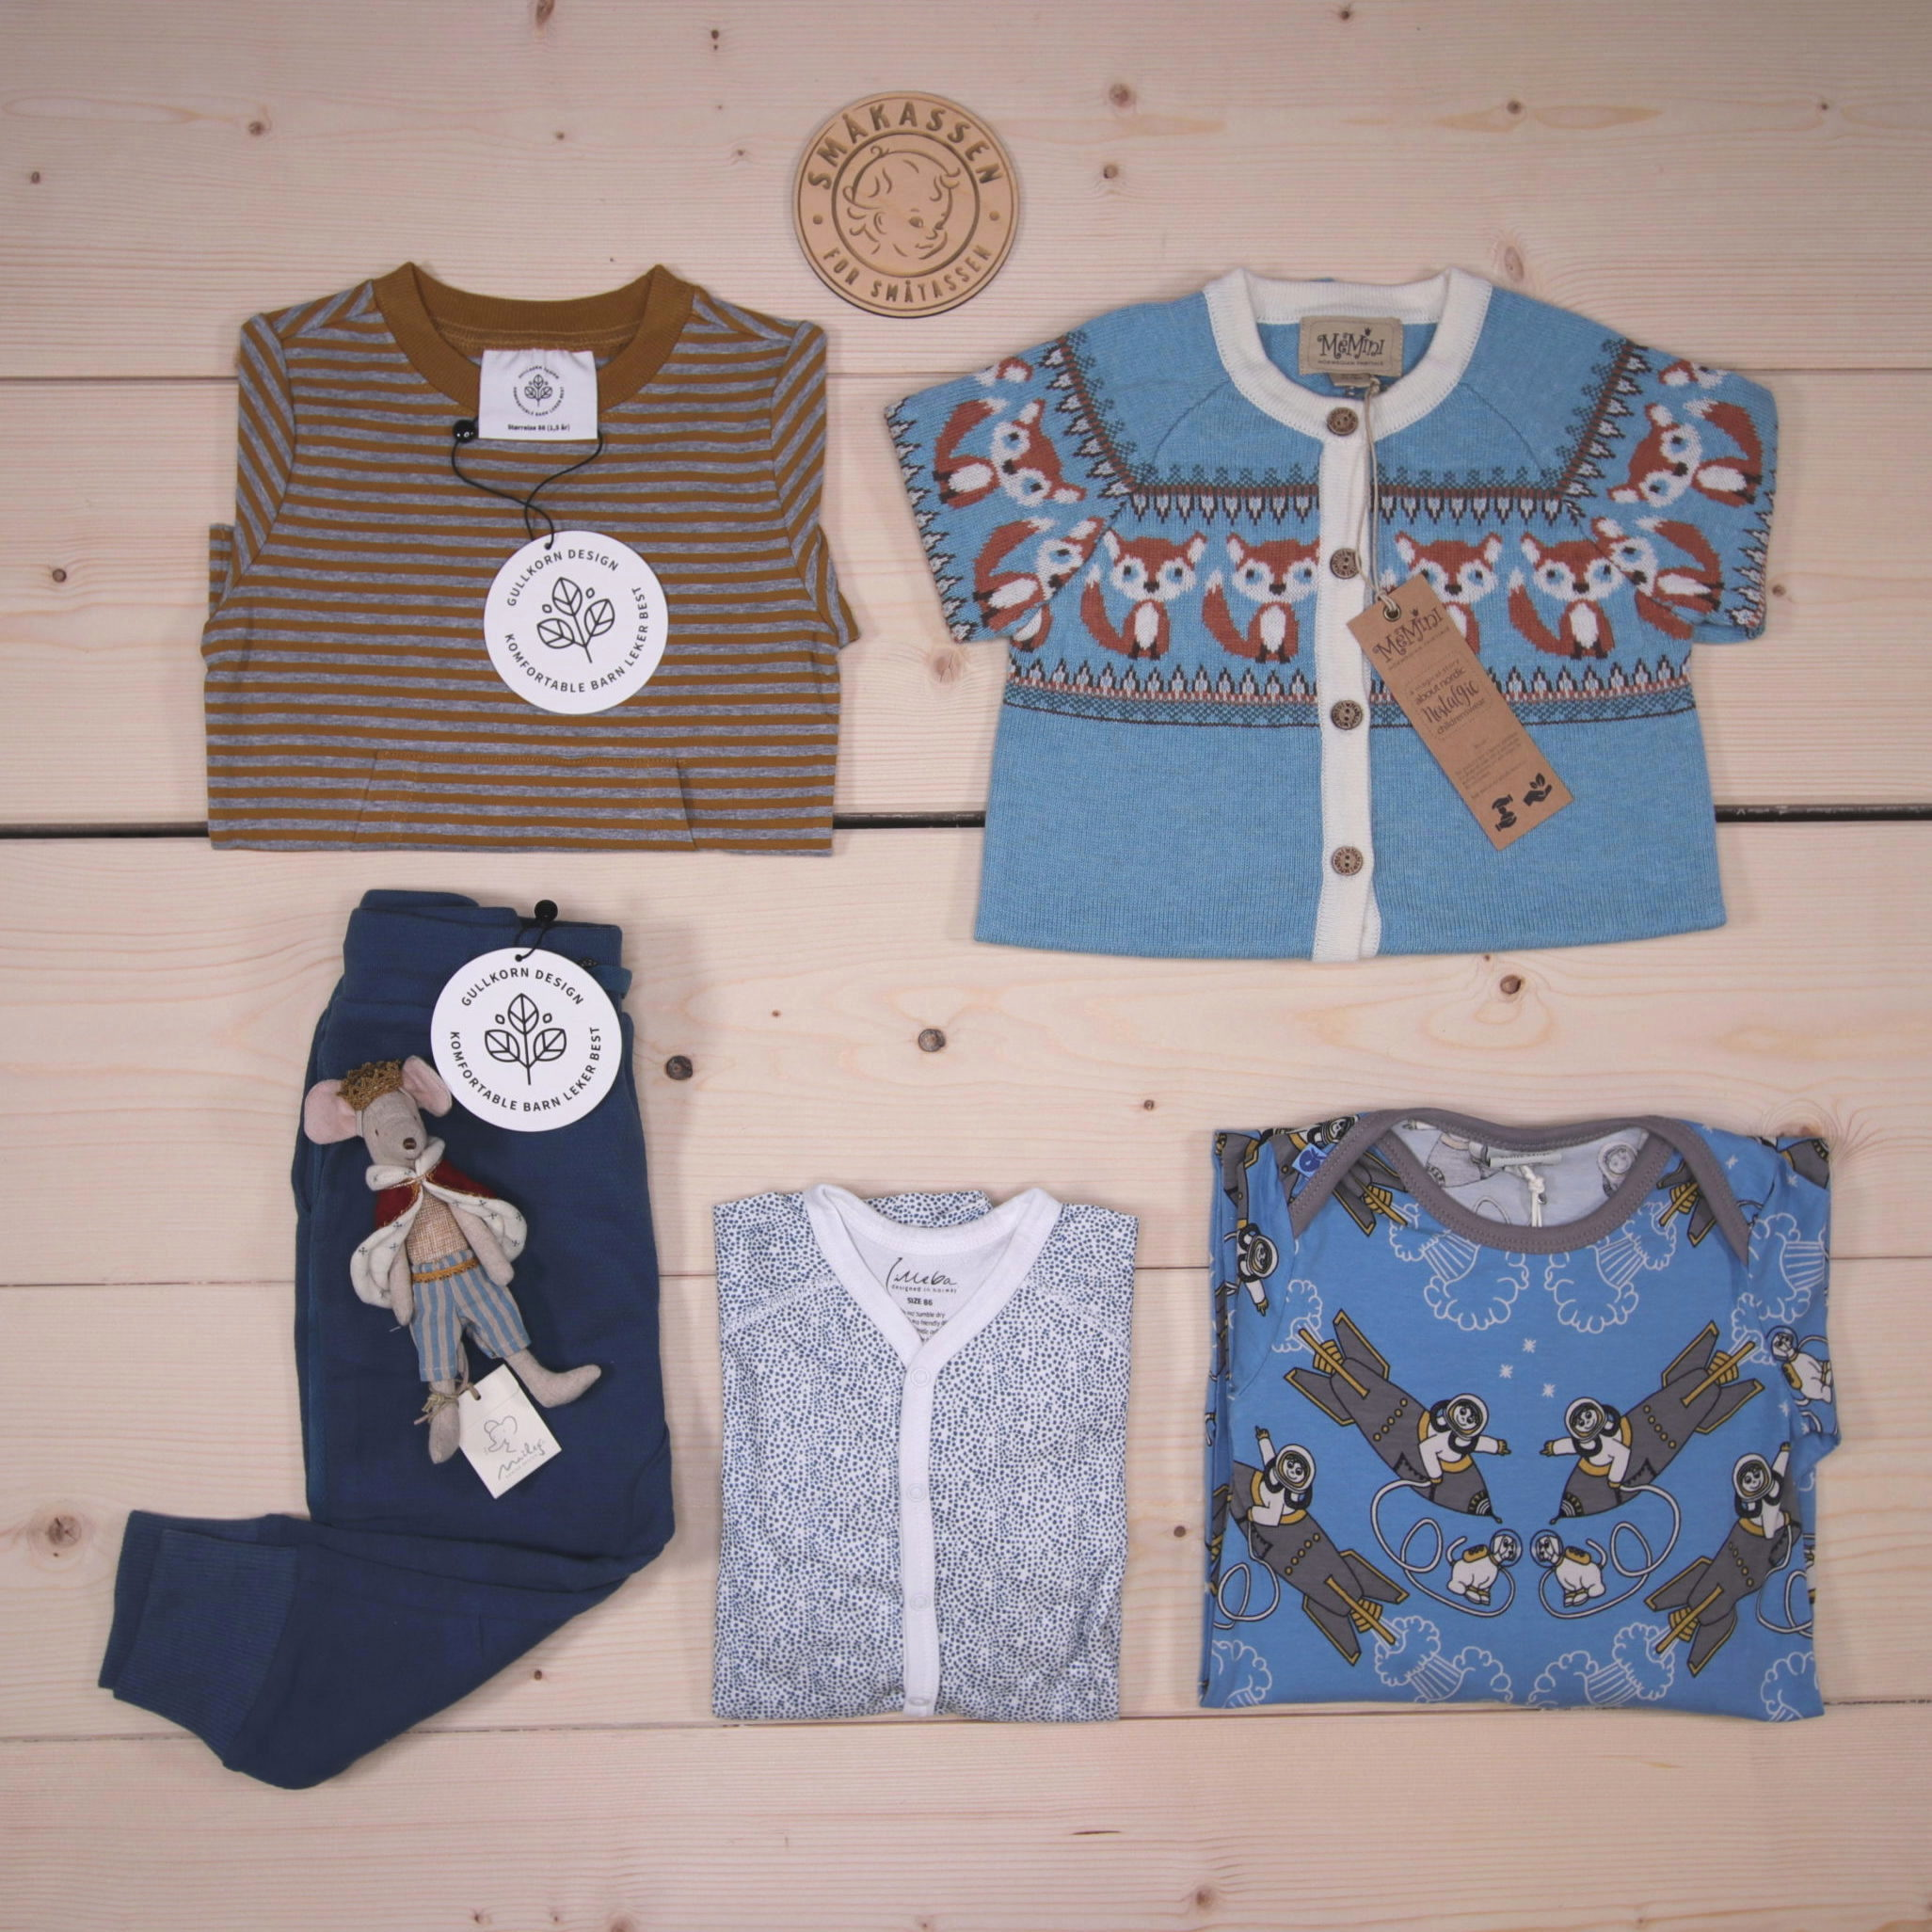 This is a 166 GBP* Småkassen that we prepared for a boy  in the styles cute and cool in size 86